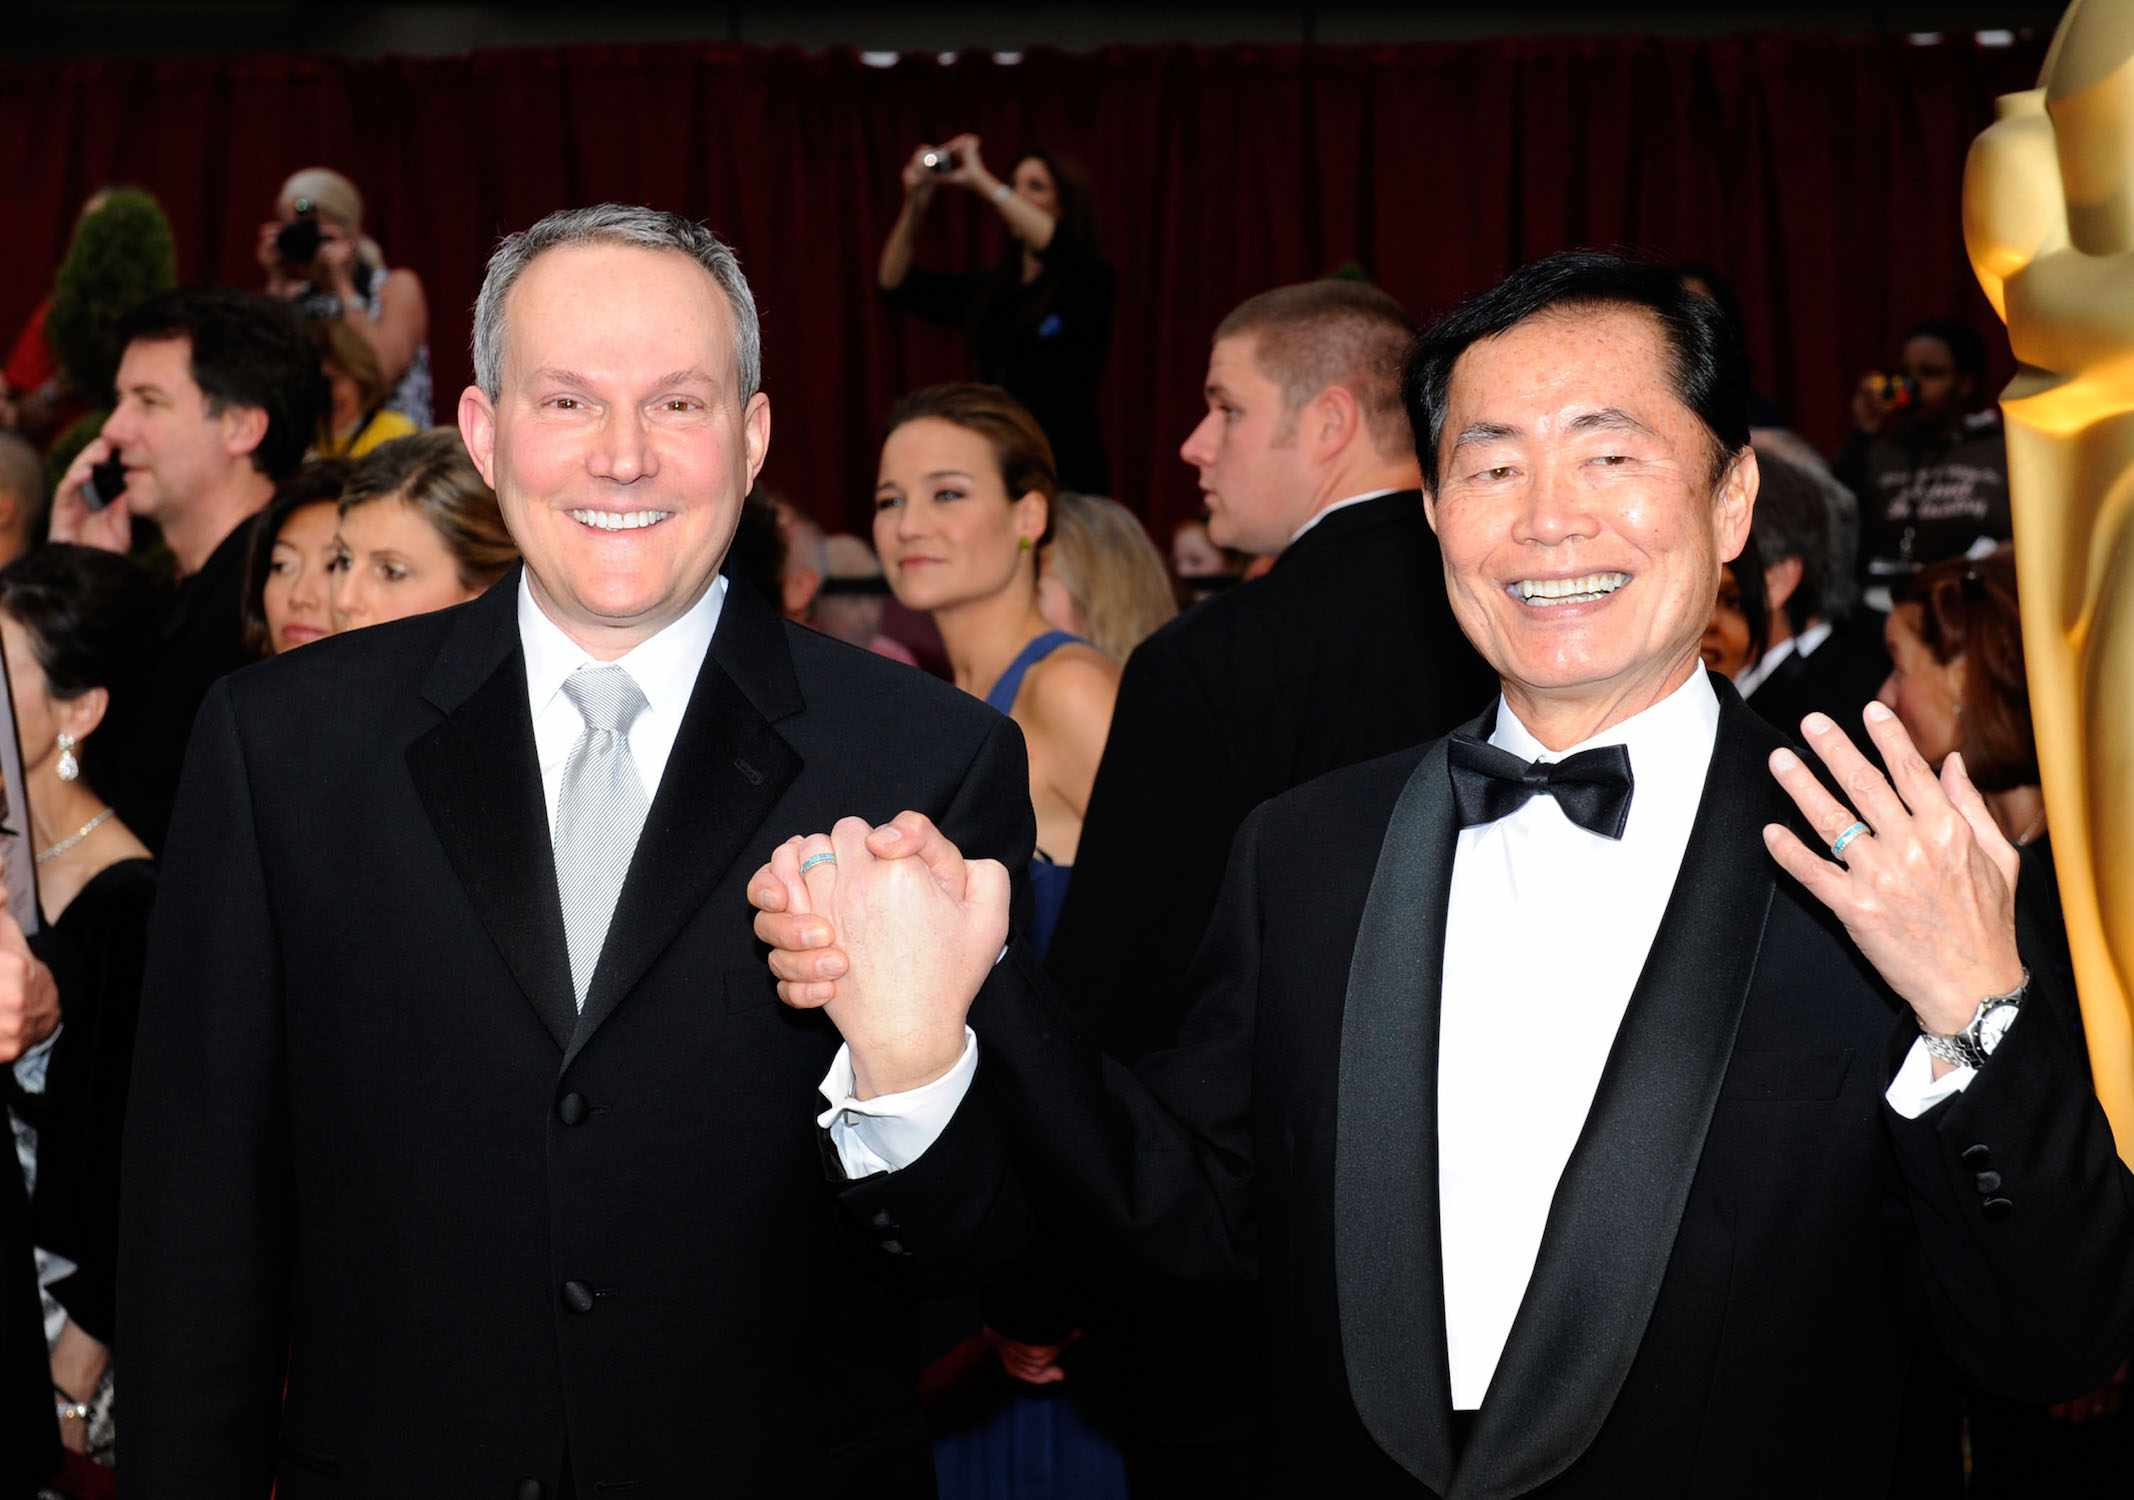 Brad Takei holds husband George Takei's hand on the Oscars red carpet as George flashes his ring